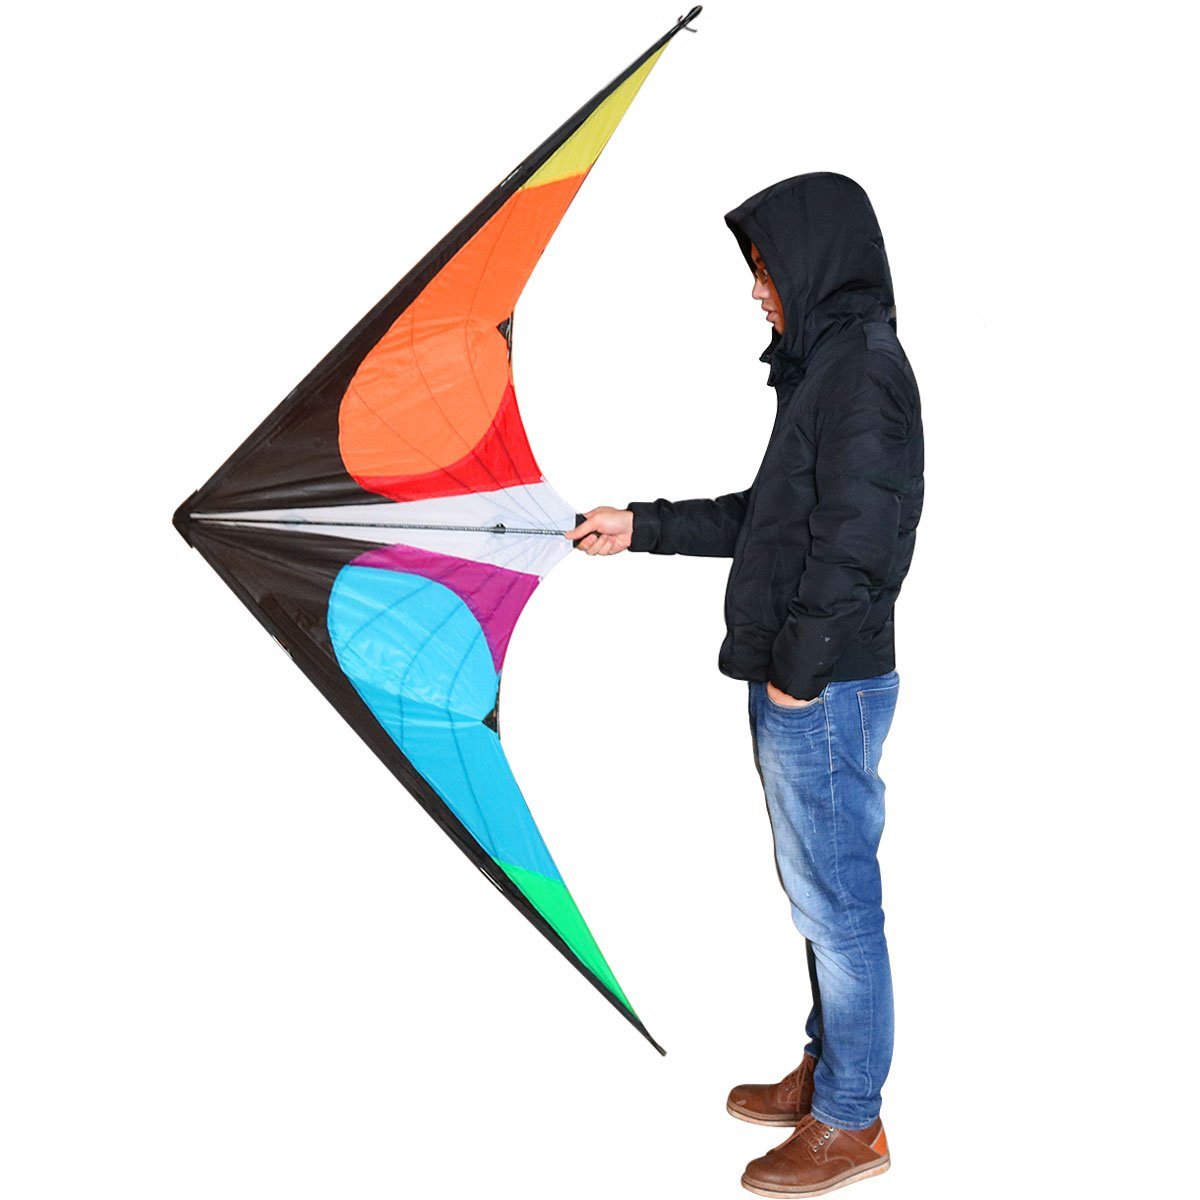 Tresbro Adult Stunt Kites, 71 x 30 Inches Cool Large Delta Power Kite Flying with Kite String for Beach Fun and Outdoor Games by Tresbro